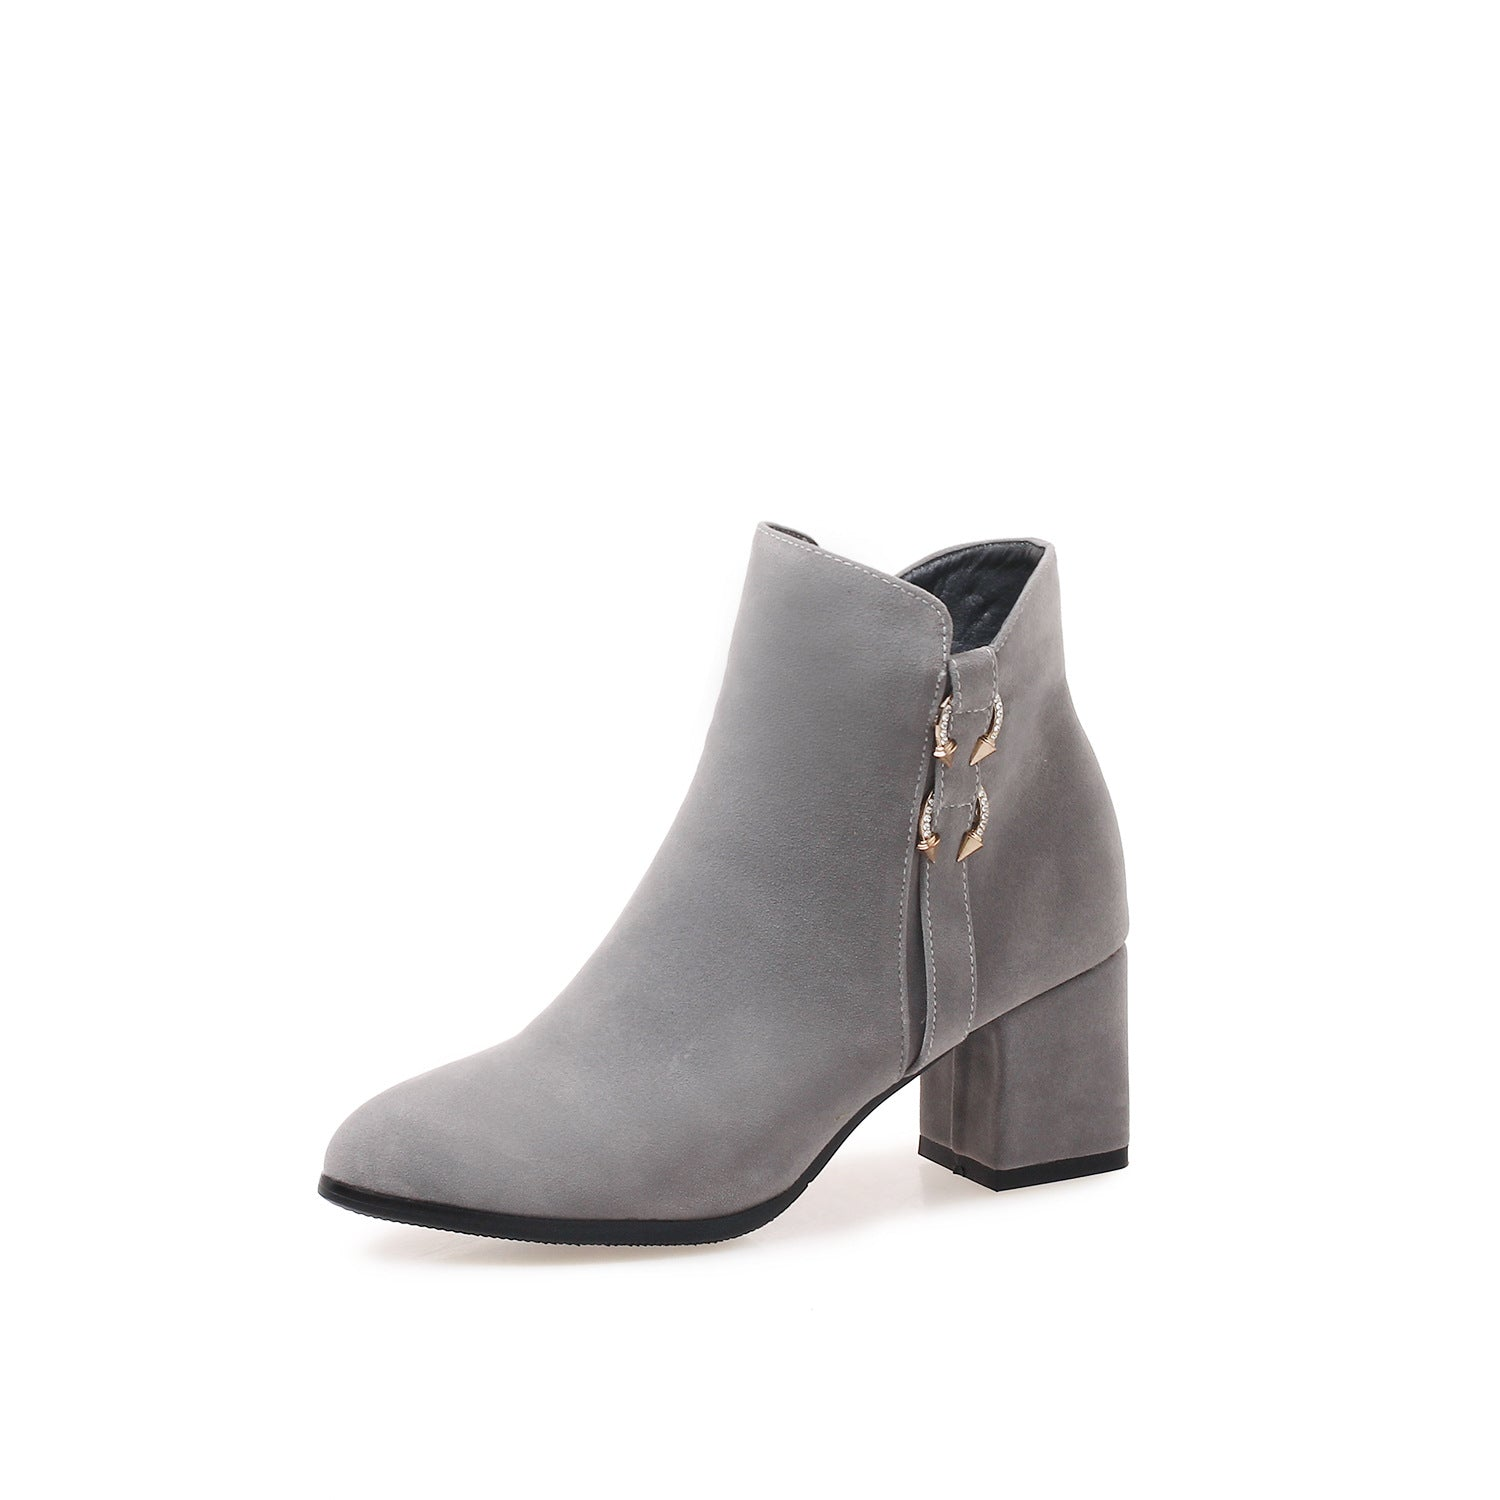 25f52b35caf Pointed Toe Suede Zipper Ankle Boots Chunky Heel Shoes 2161